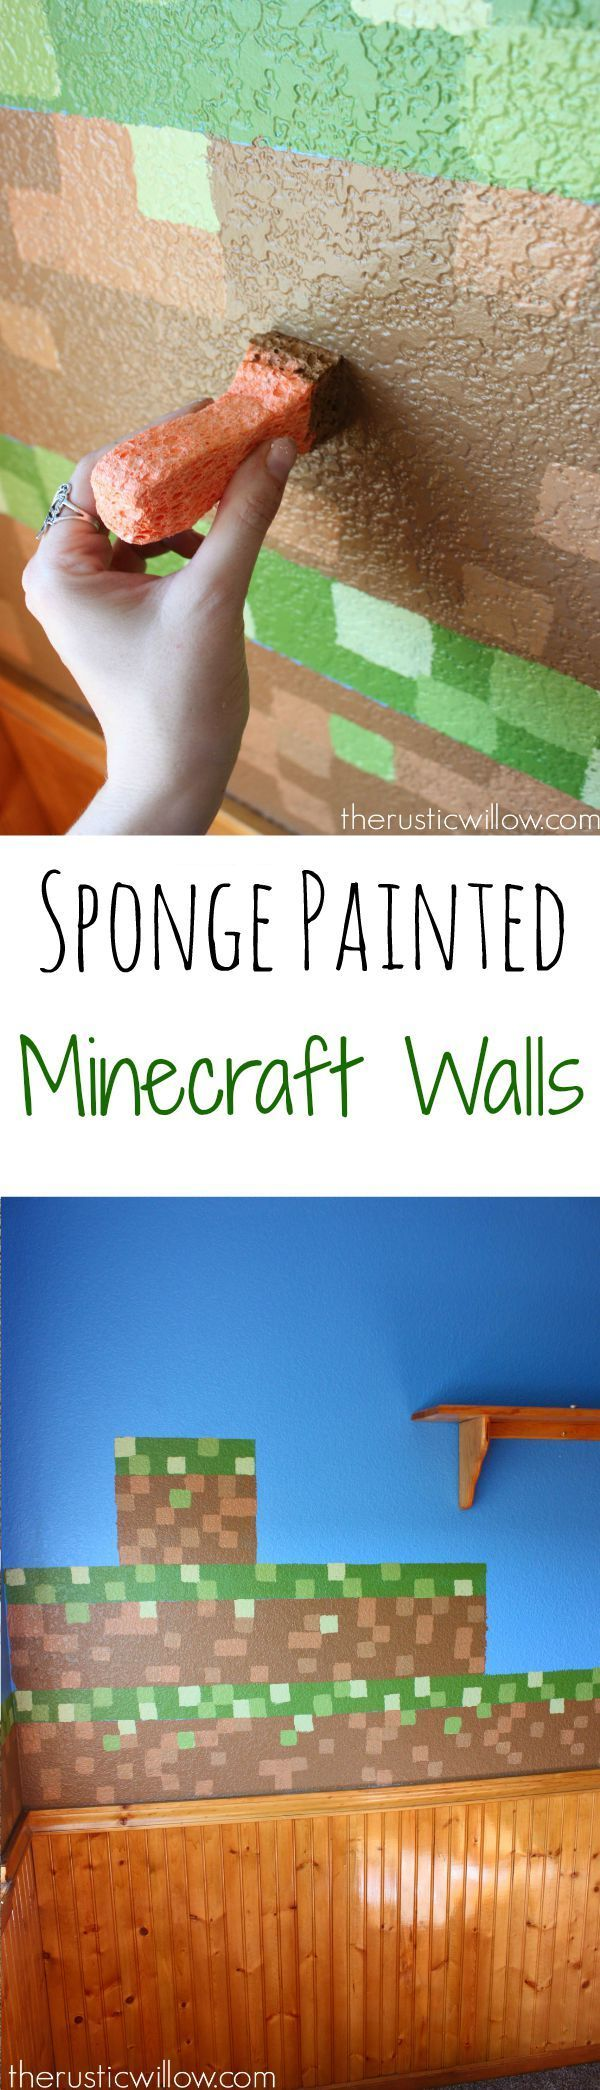 Think painting Minecraft walls is hard? Think again. Use this sponge method to paint fool-proof Minecraft walls   therusticwillow.com